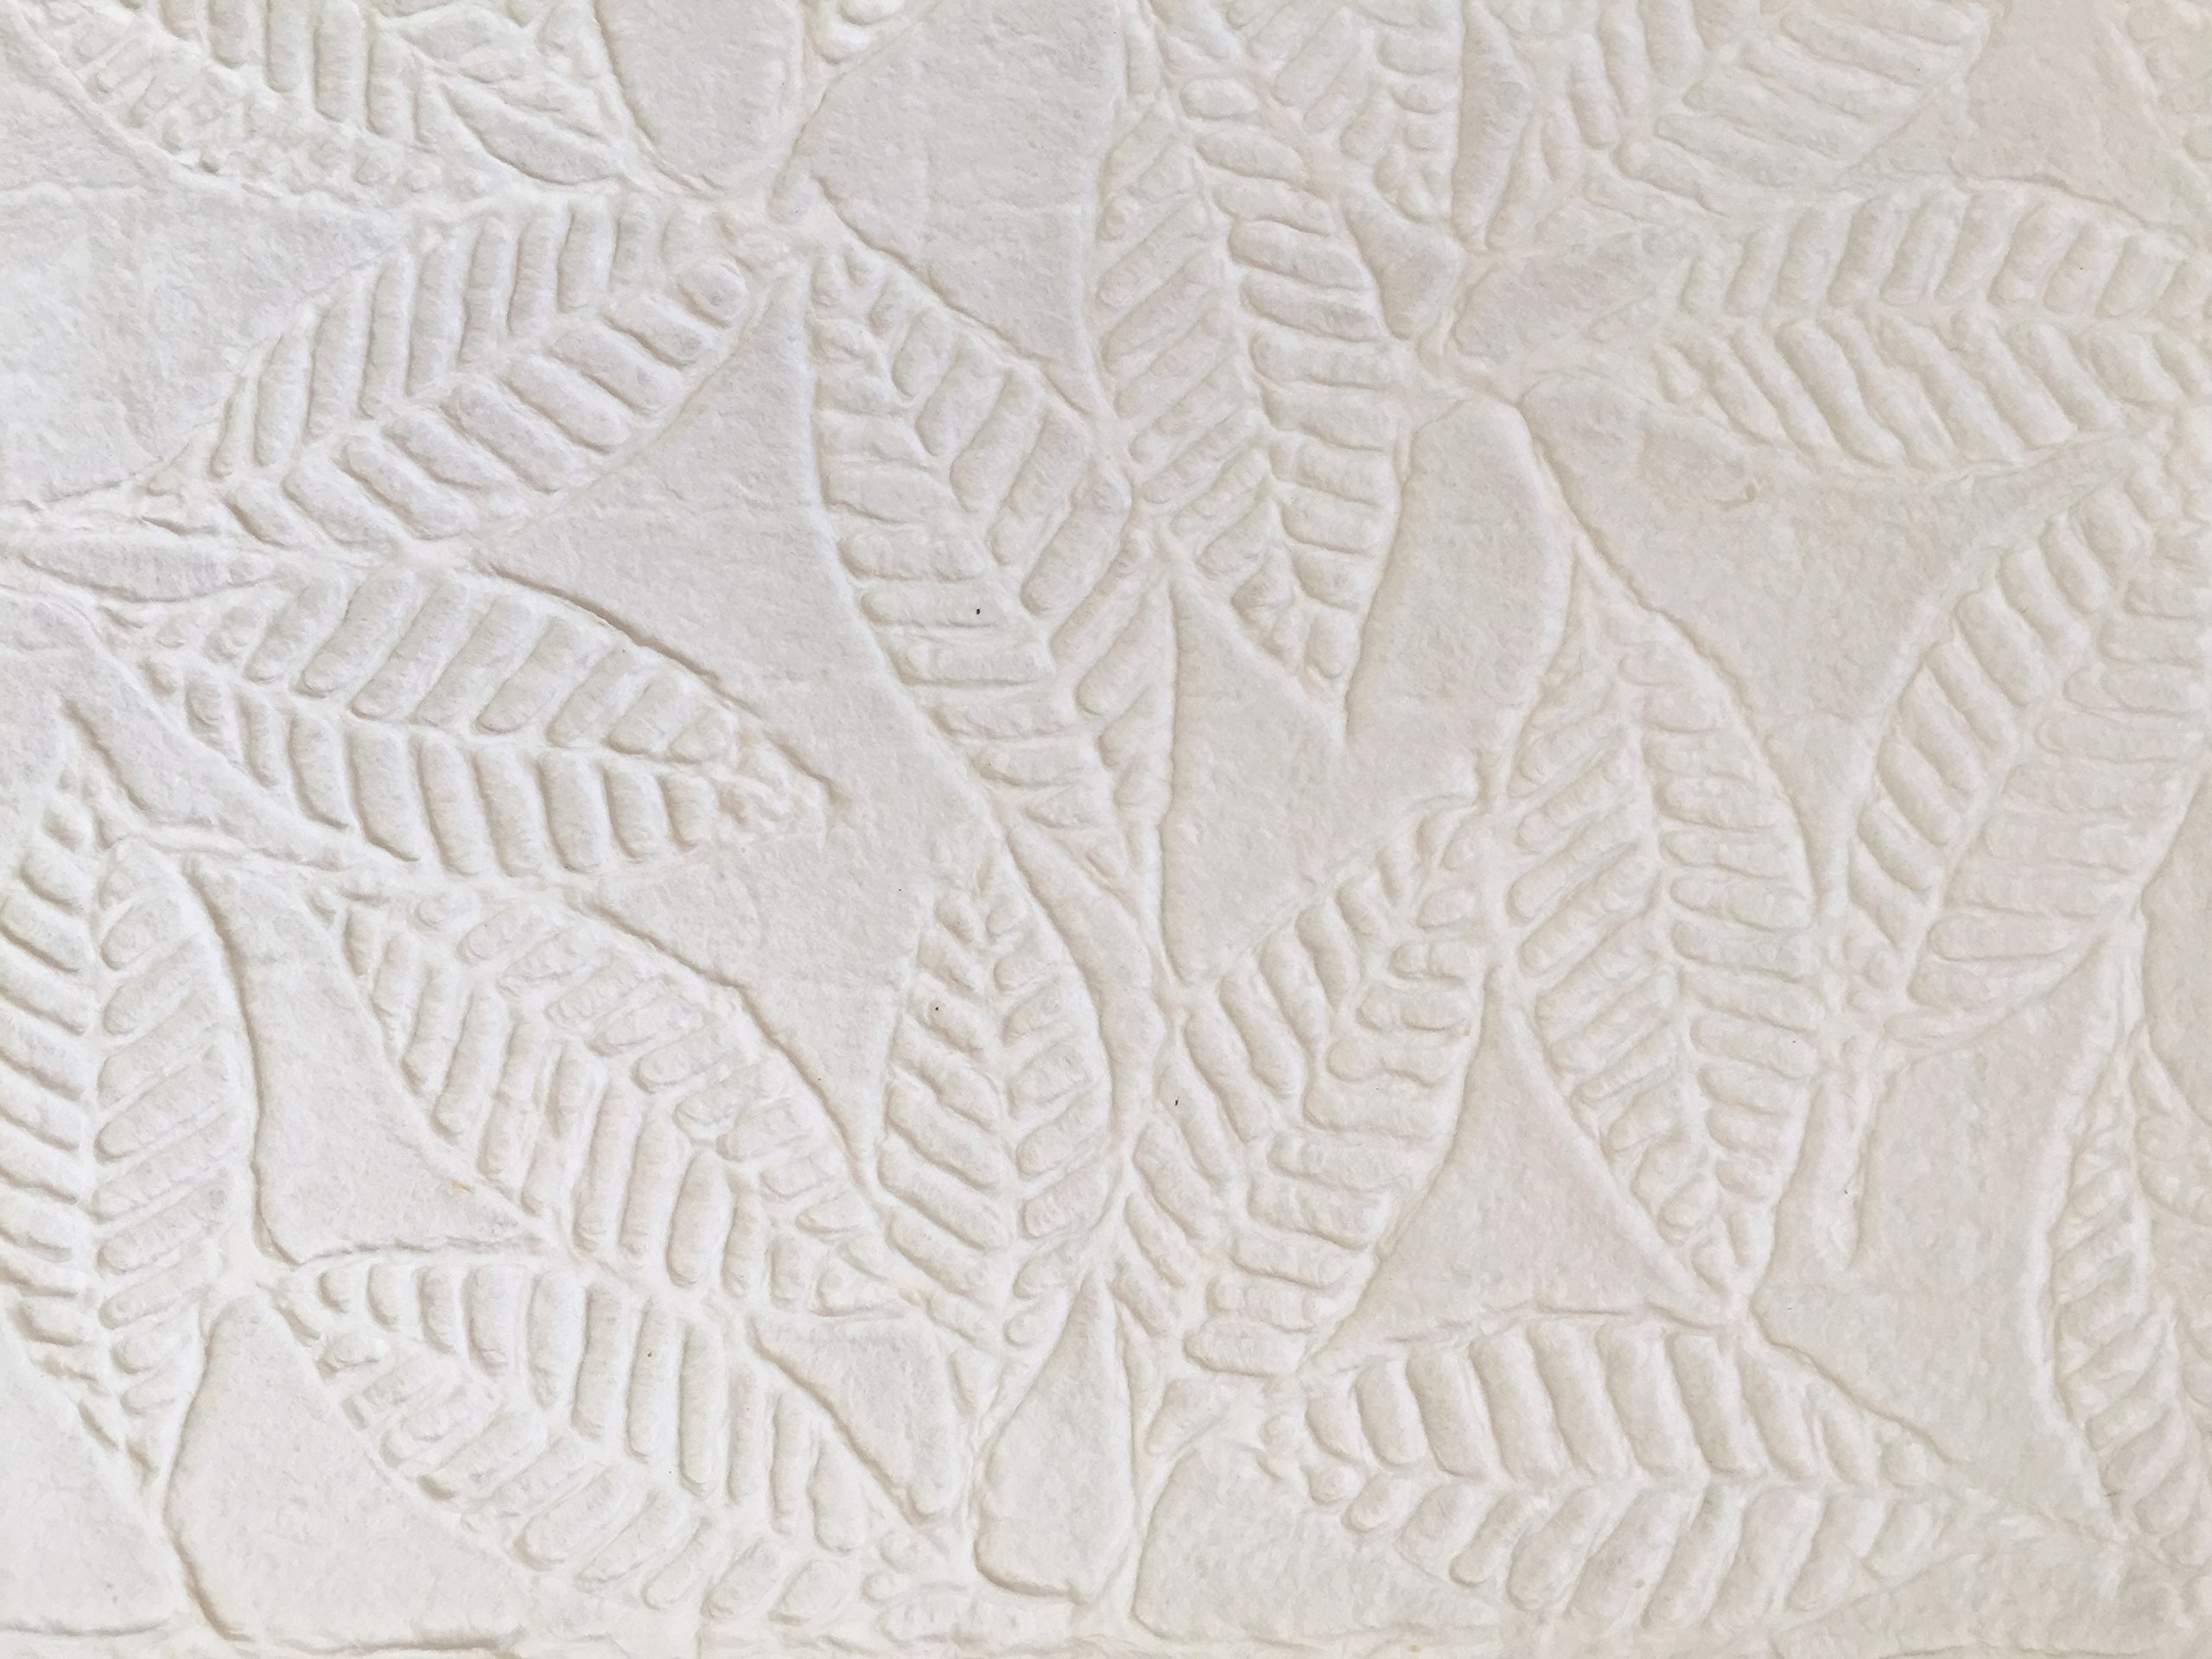 3 Sheets - Eco Friendly Fine Handmade EMBOSSED LEAVES MULBERRY PAPER B562